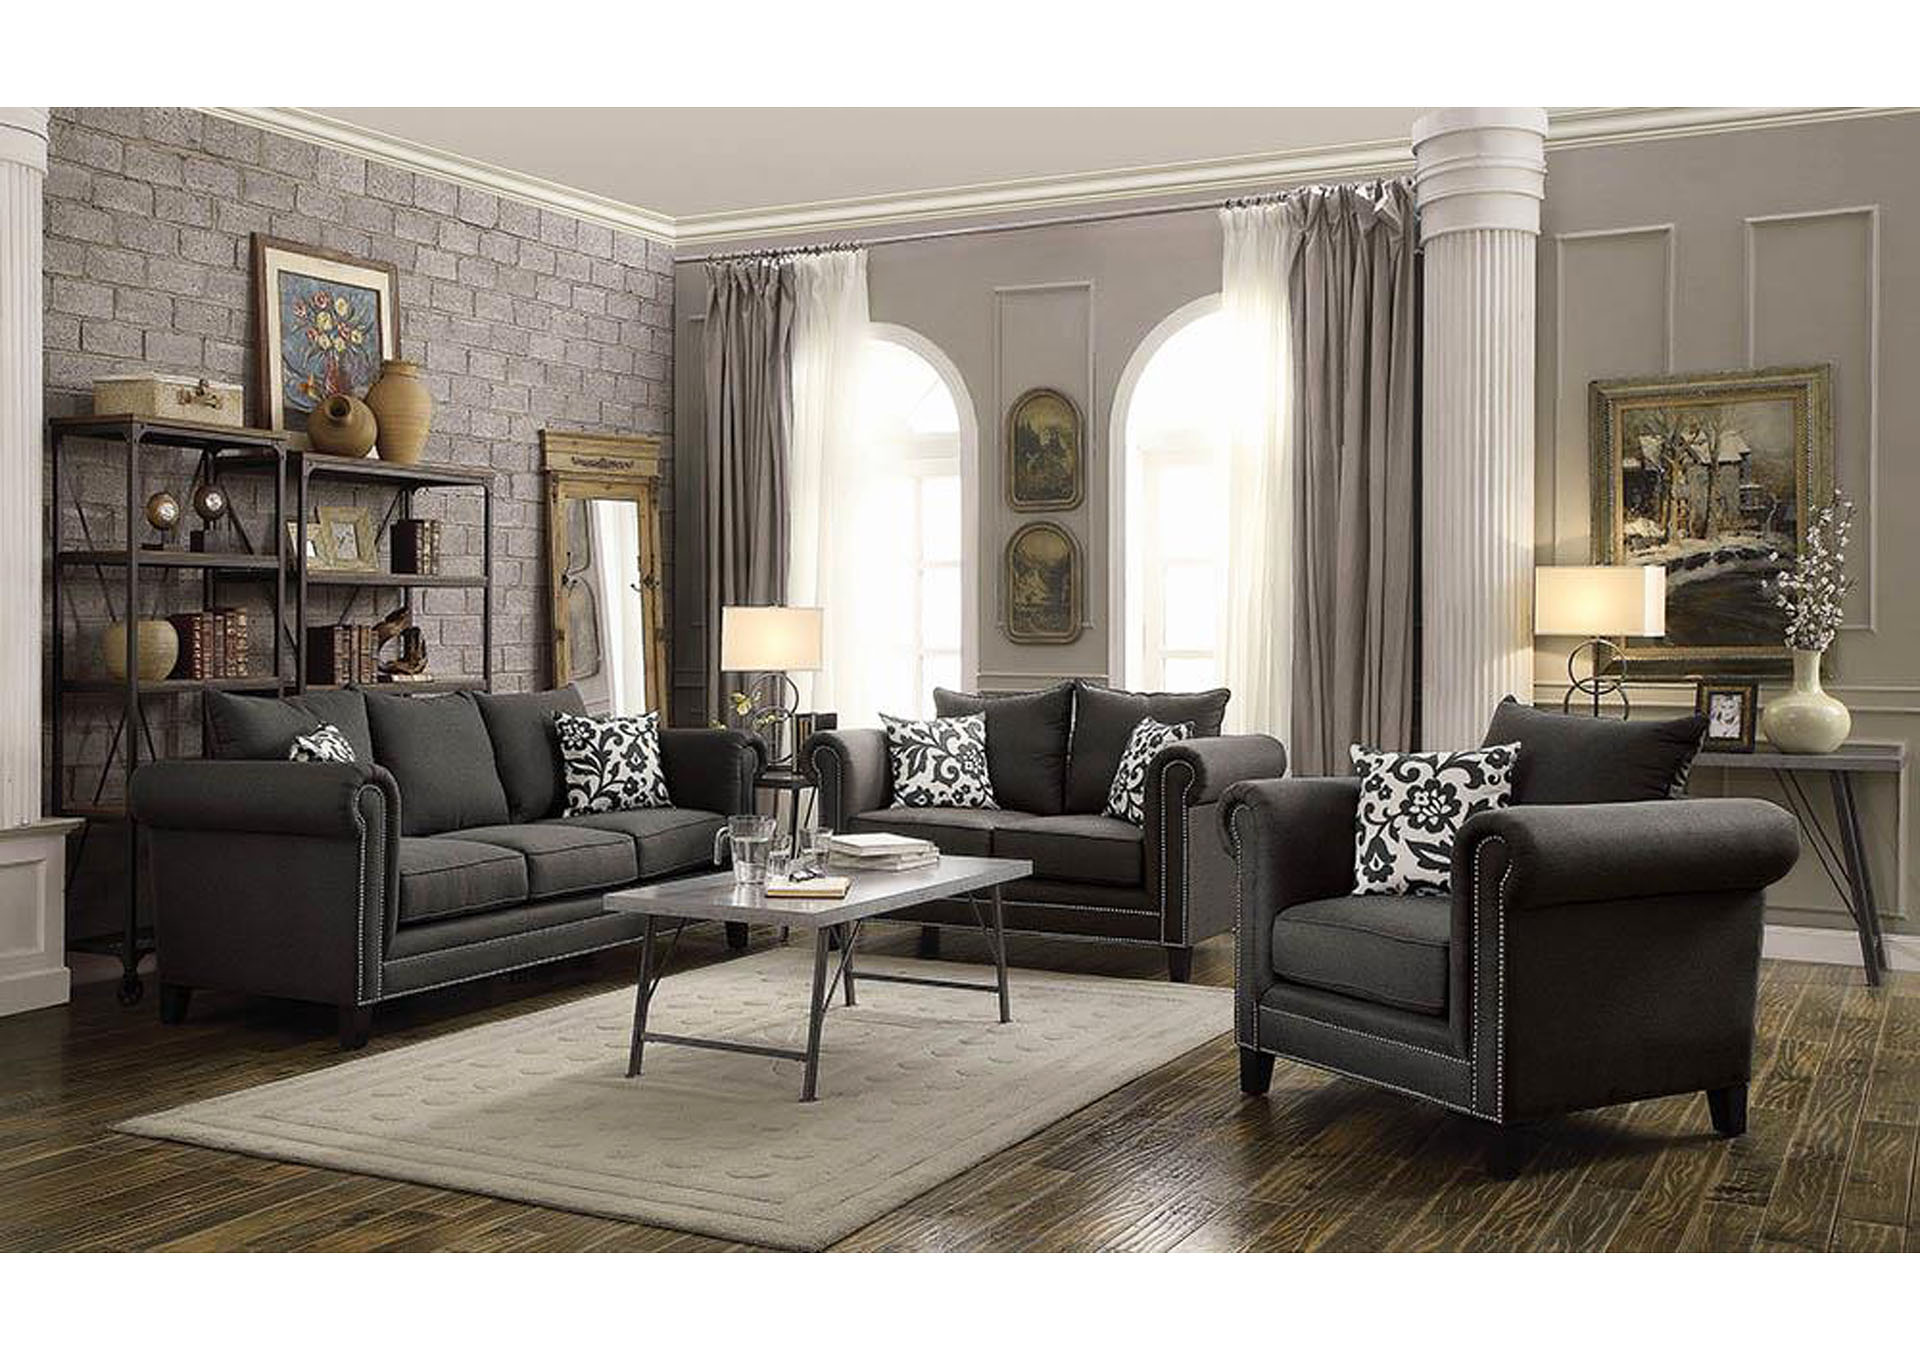 Council 39 s furniture charcoal sofa for Charcoal sofa living room